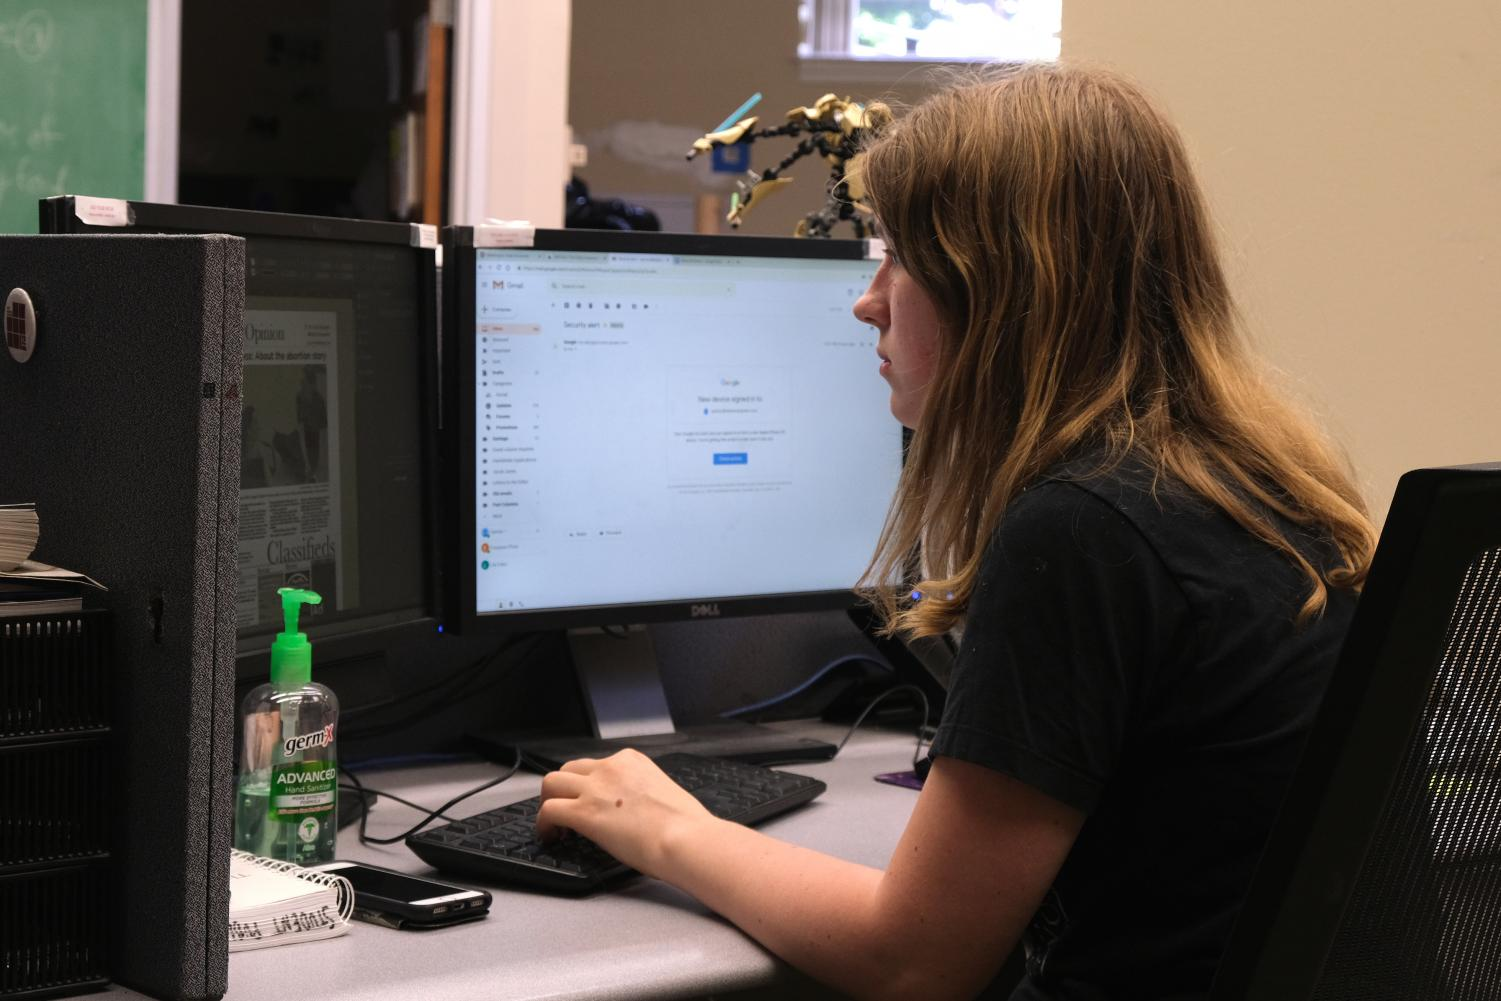 Alana Lackner, Opinion Editor for The Summer Evergreen, previews this week's Opinion section at her desk Wednesday evening in Murrow Hall.